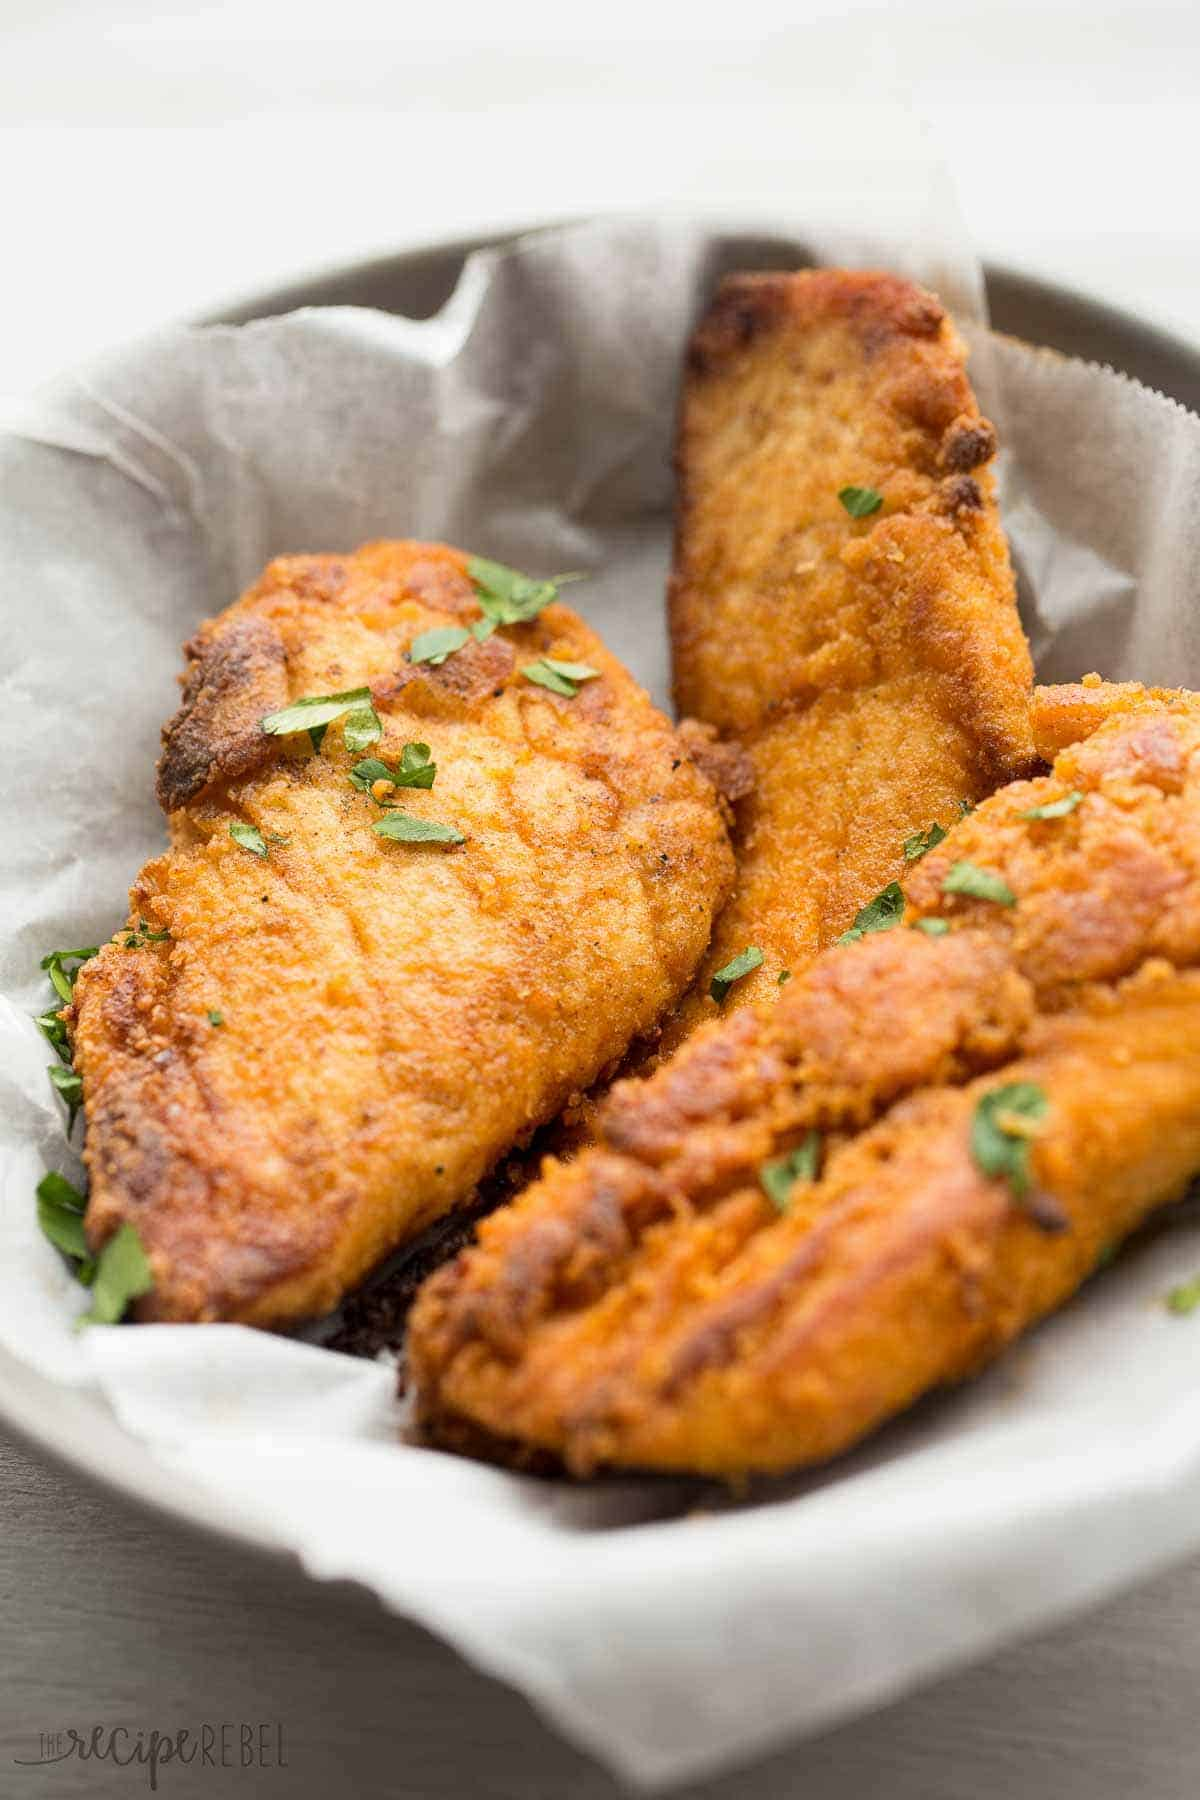 three pieces of oven fried chicken on a grey plate lined with parchment paper sprinkled with parsley